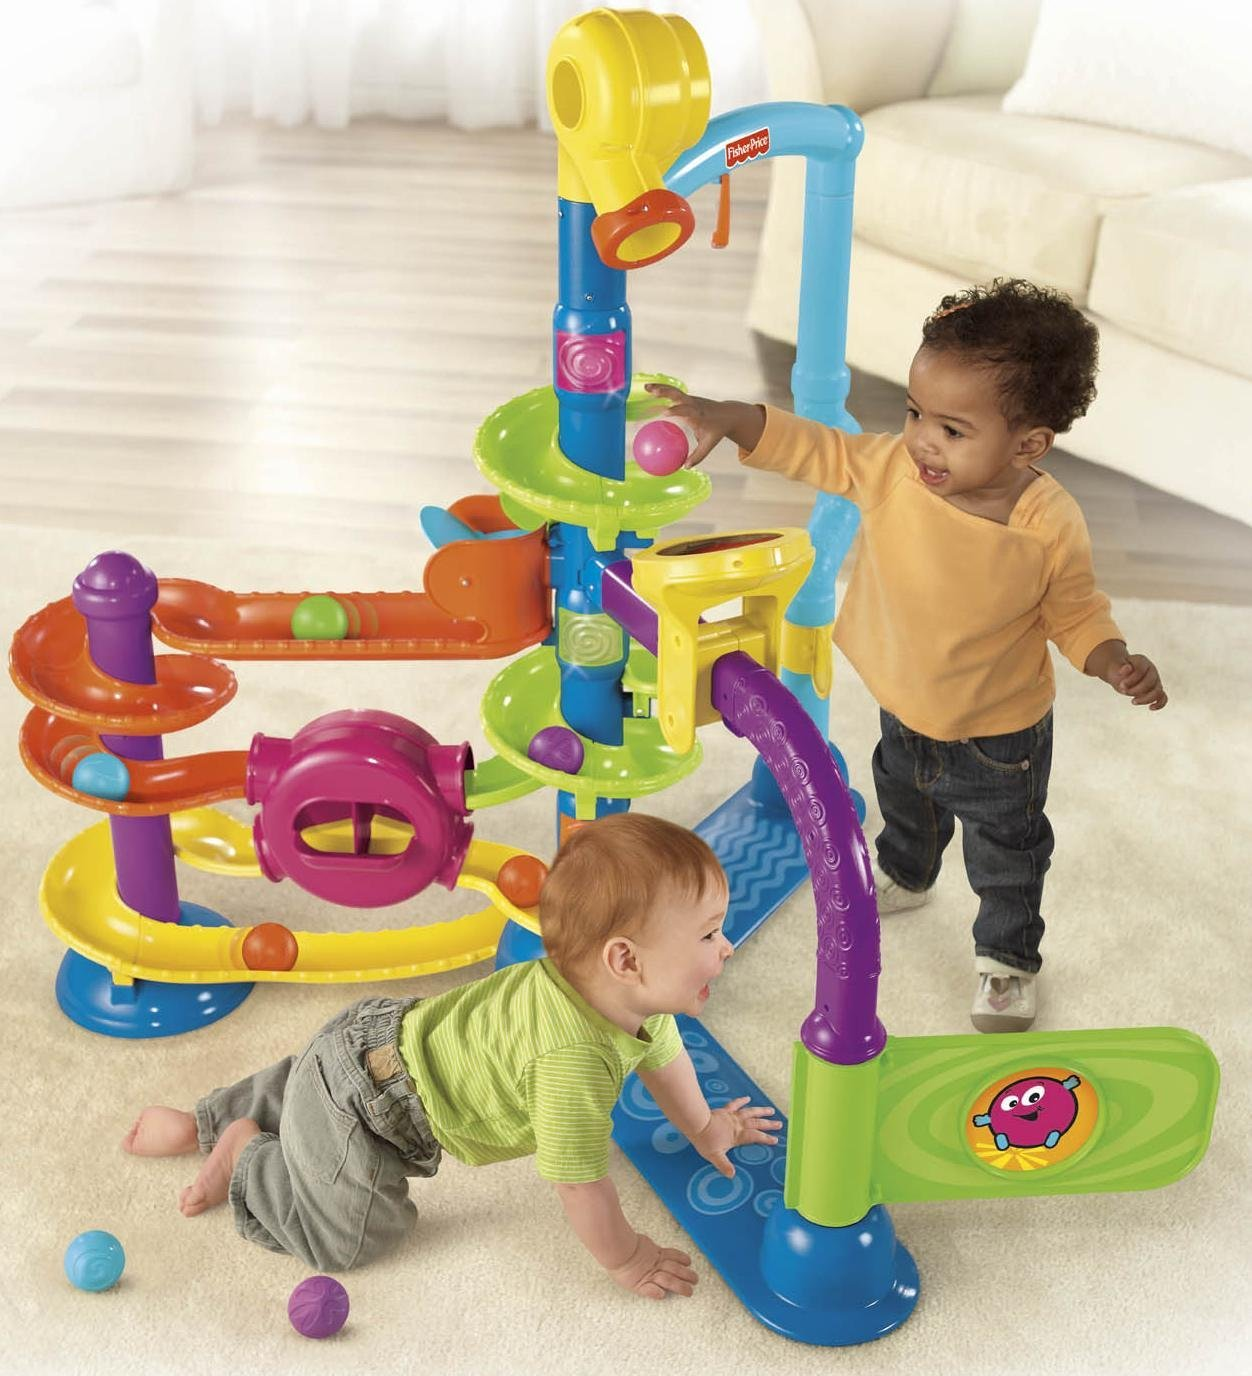 Popular Toys For 5 Year Olds : Best gifts ideas for one year old boys first birthday